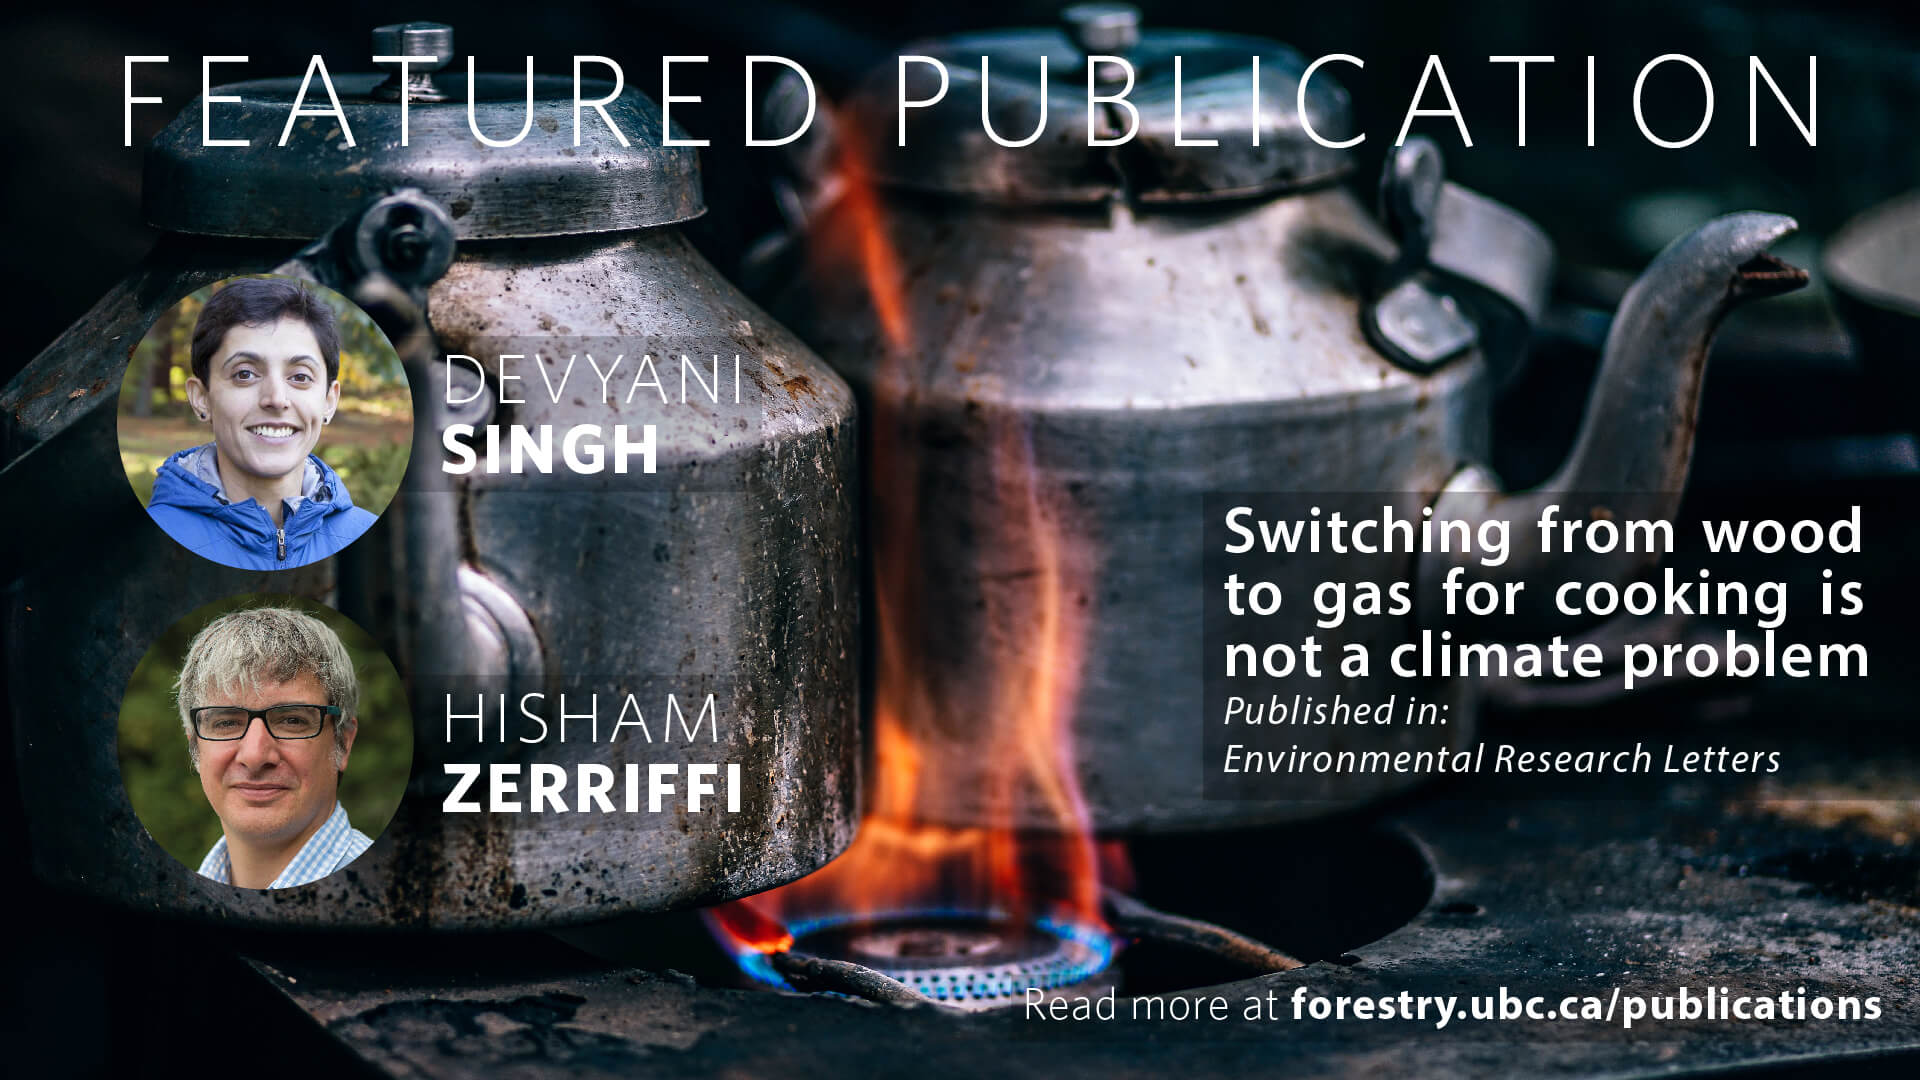 Switching from Wood to Gas for Cooking is not a Climate Problem